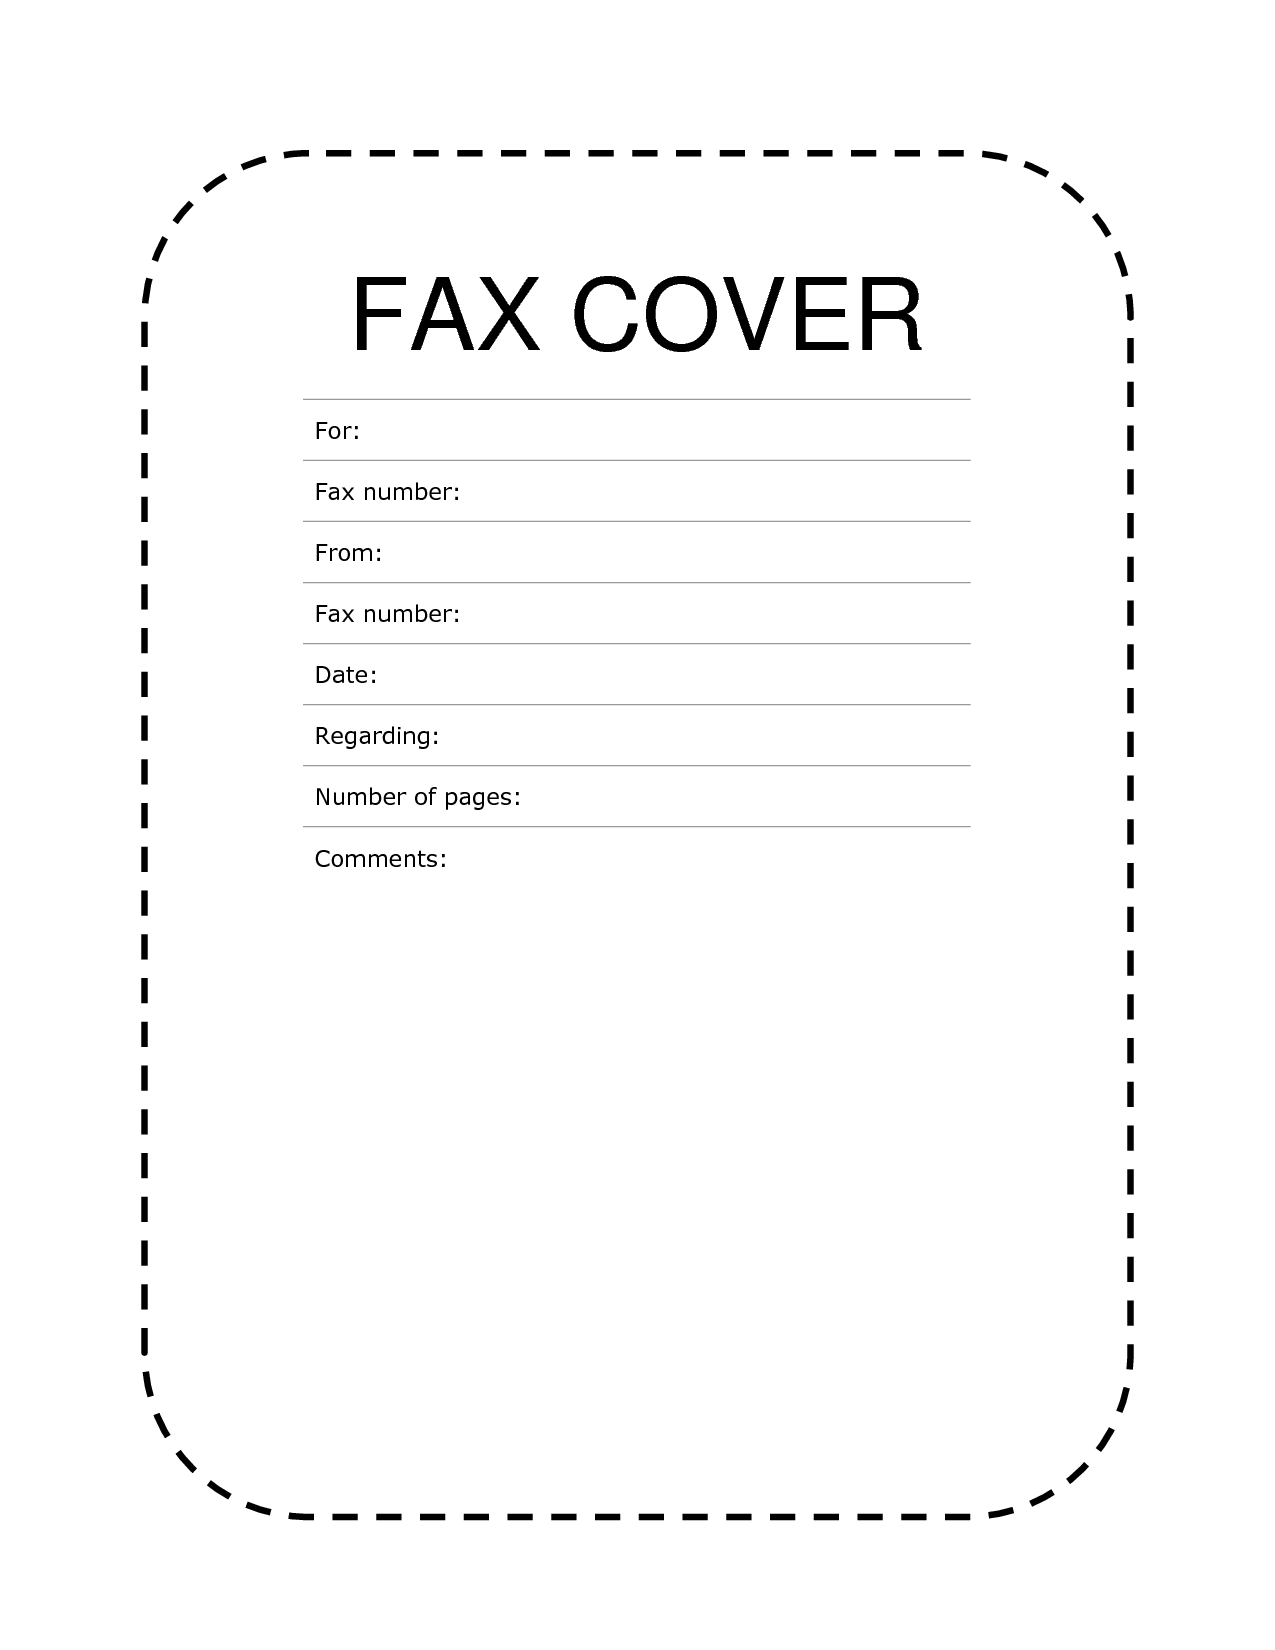 Fax Cover Sheet Dashed Lines Cover Sheet Template Fax Cover Sheet Cover Letter Sample